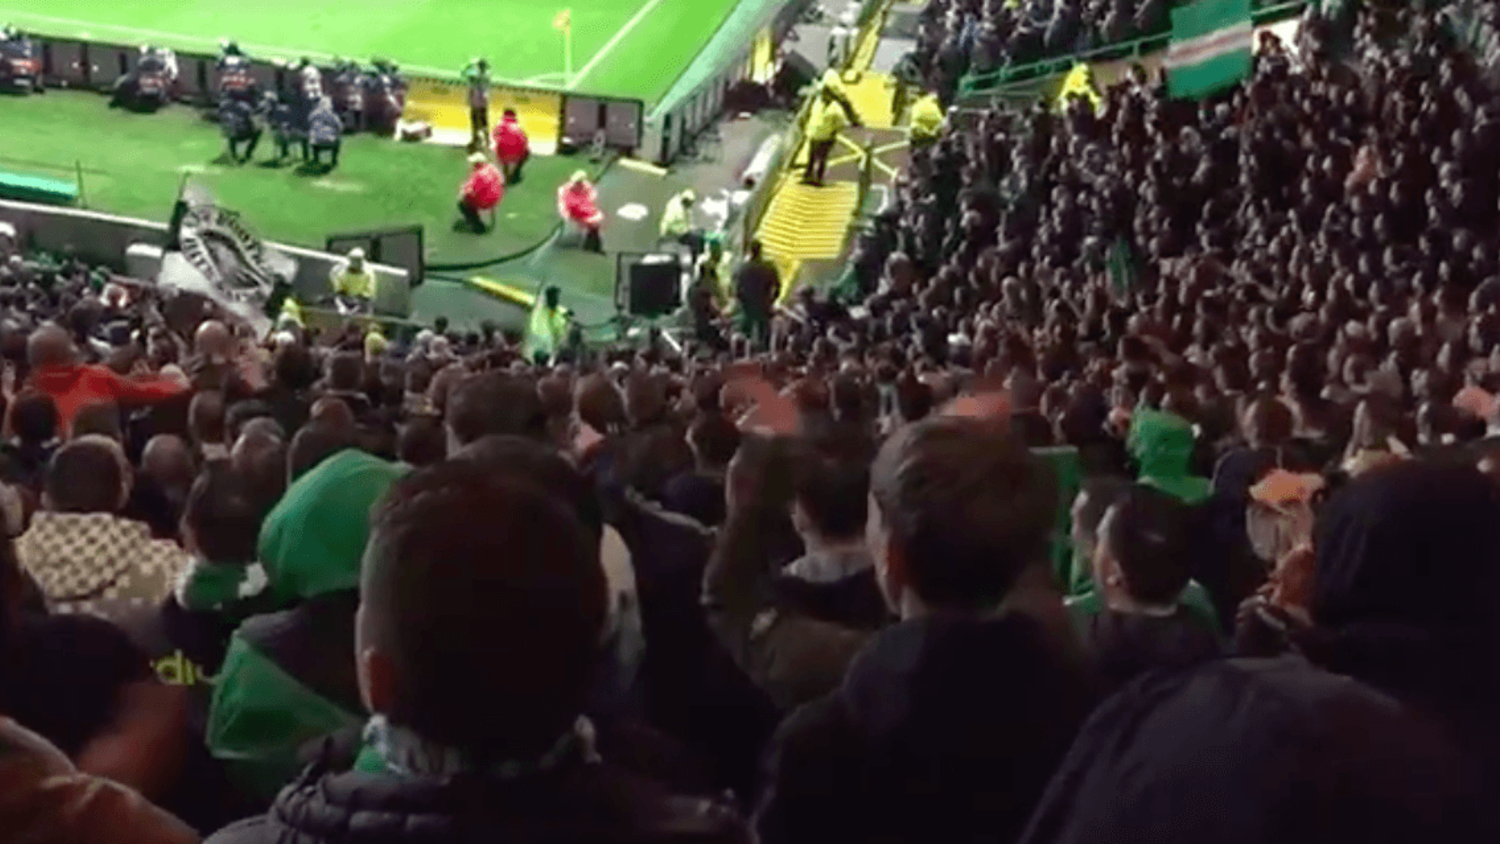 Scenes When Celtic Ended Pep's Perfect City Record